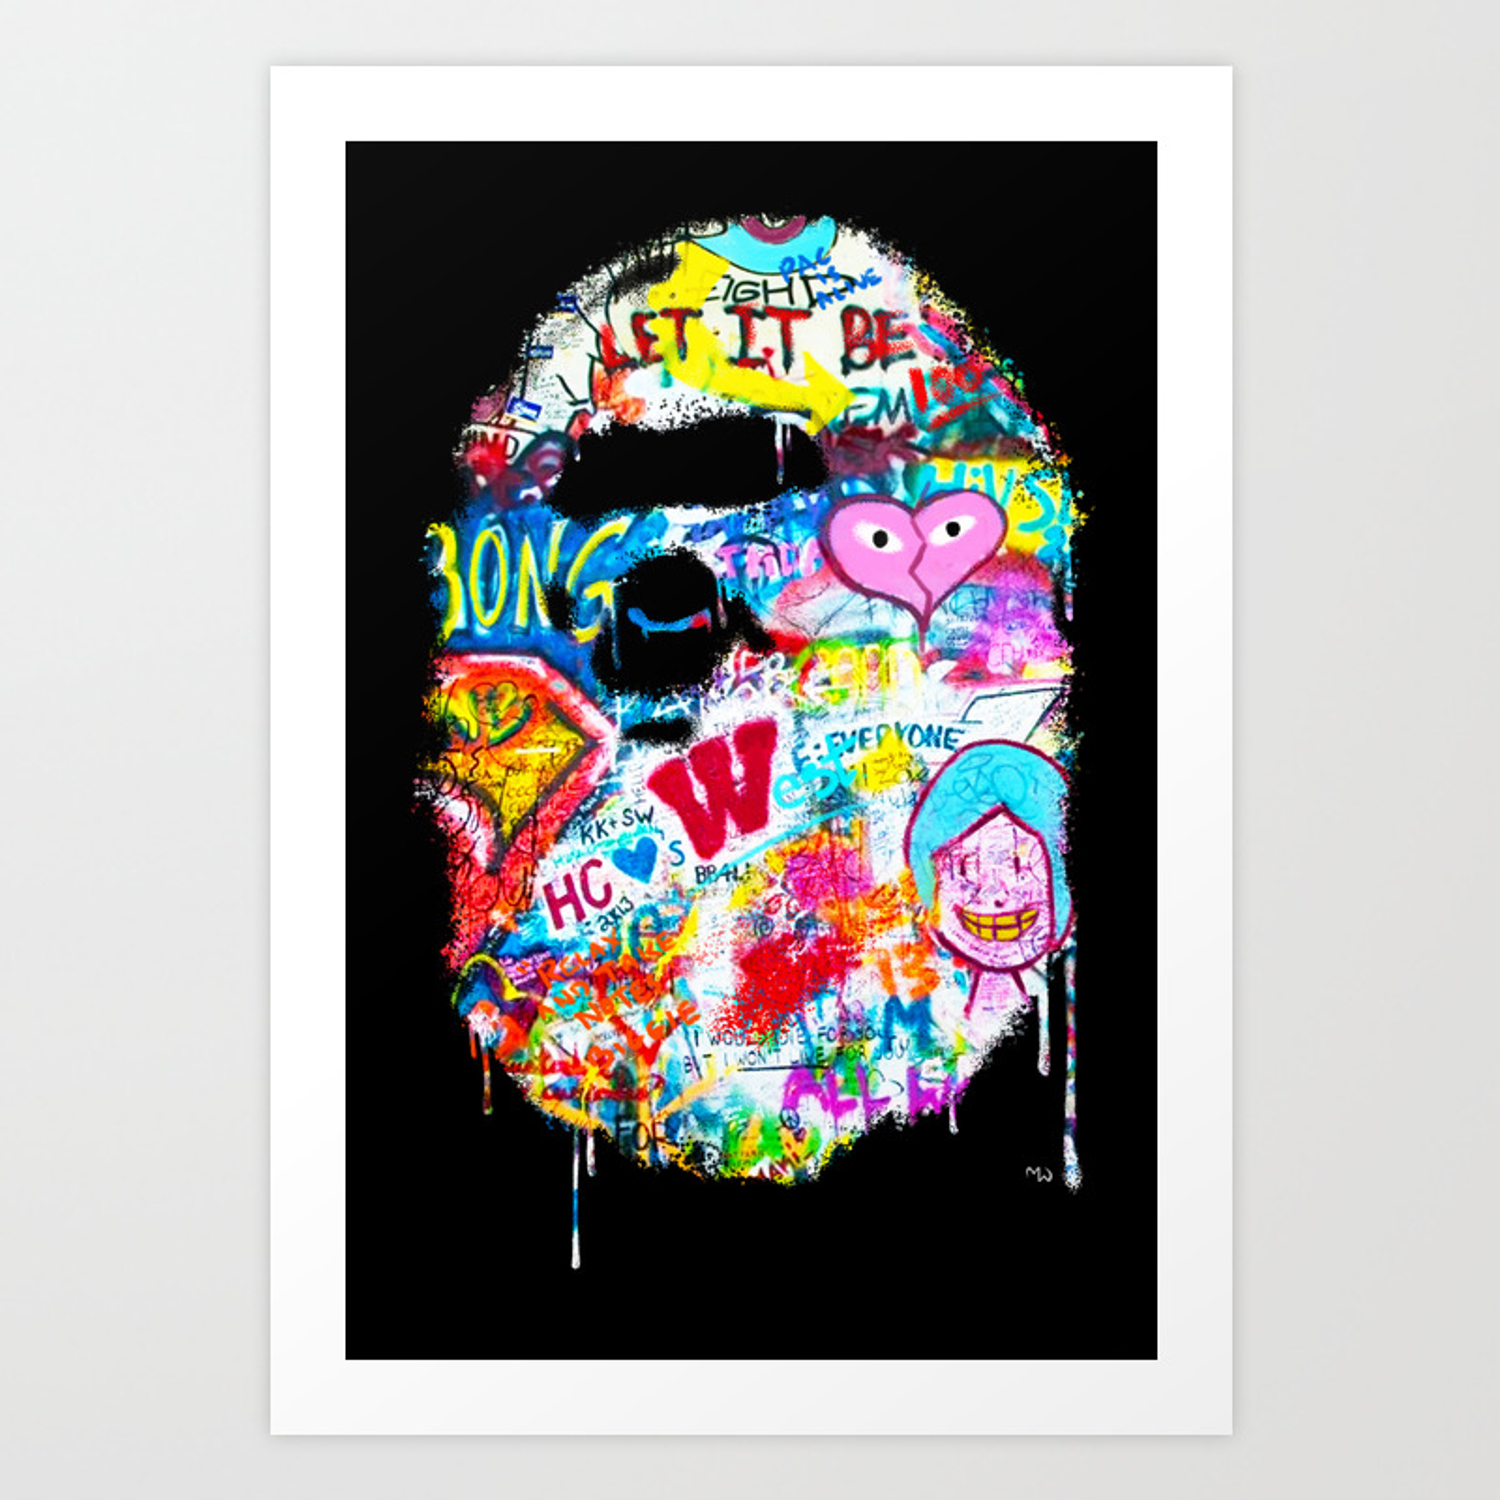 Graffiti hypebeast bape illustration art print